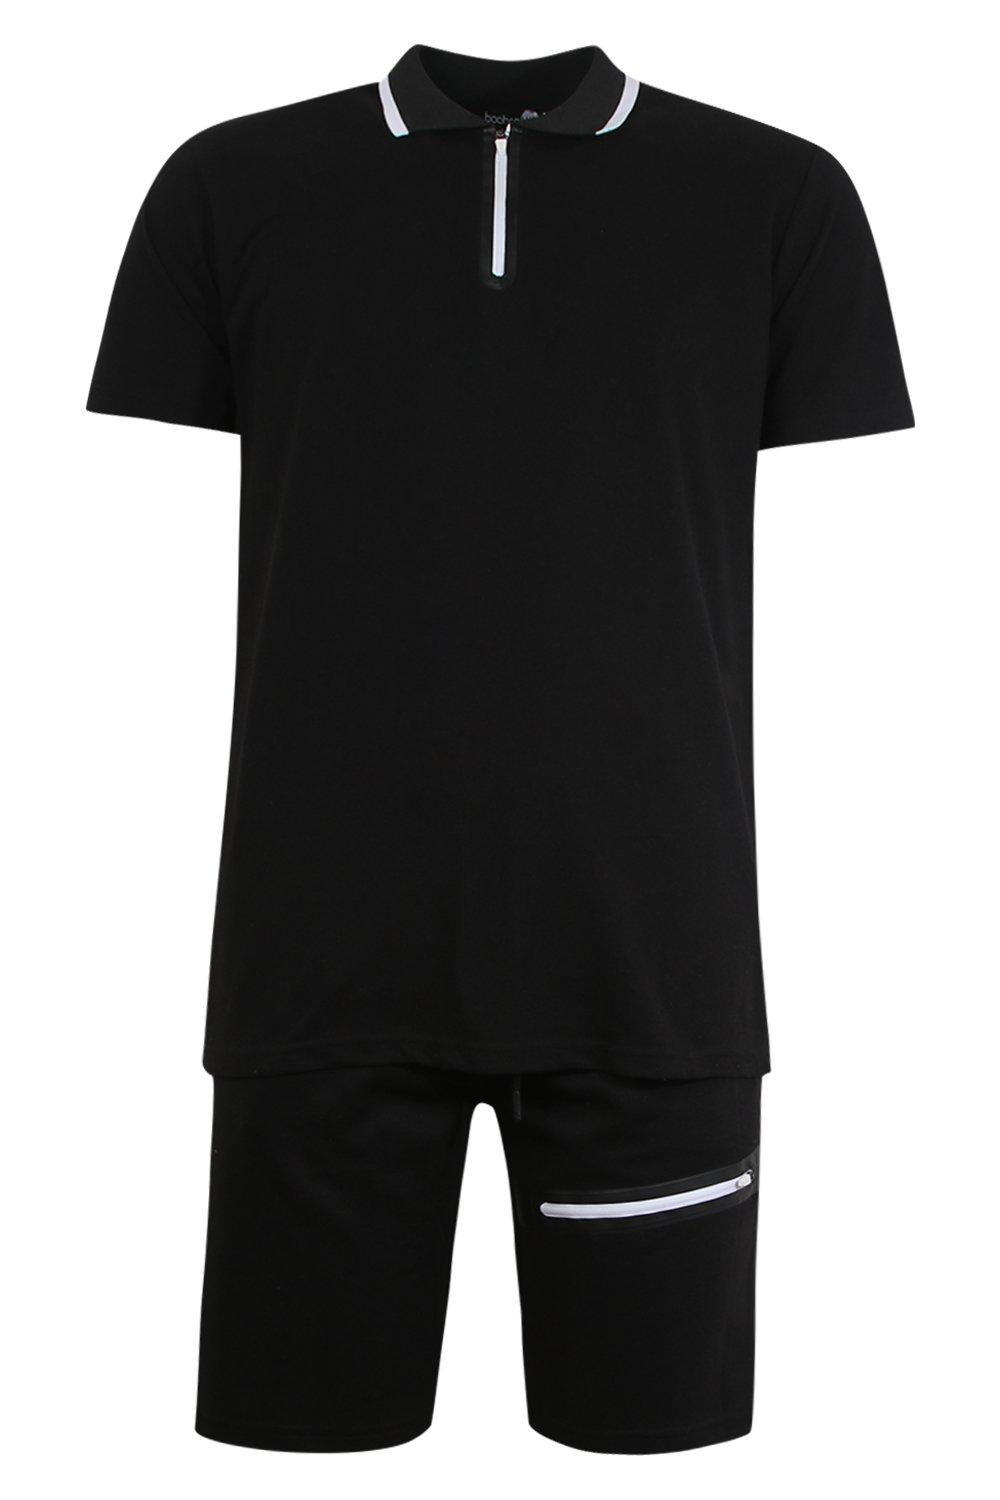 boohooMAN black Sports Zip Polo and Slim Mid Length Short Set